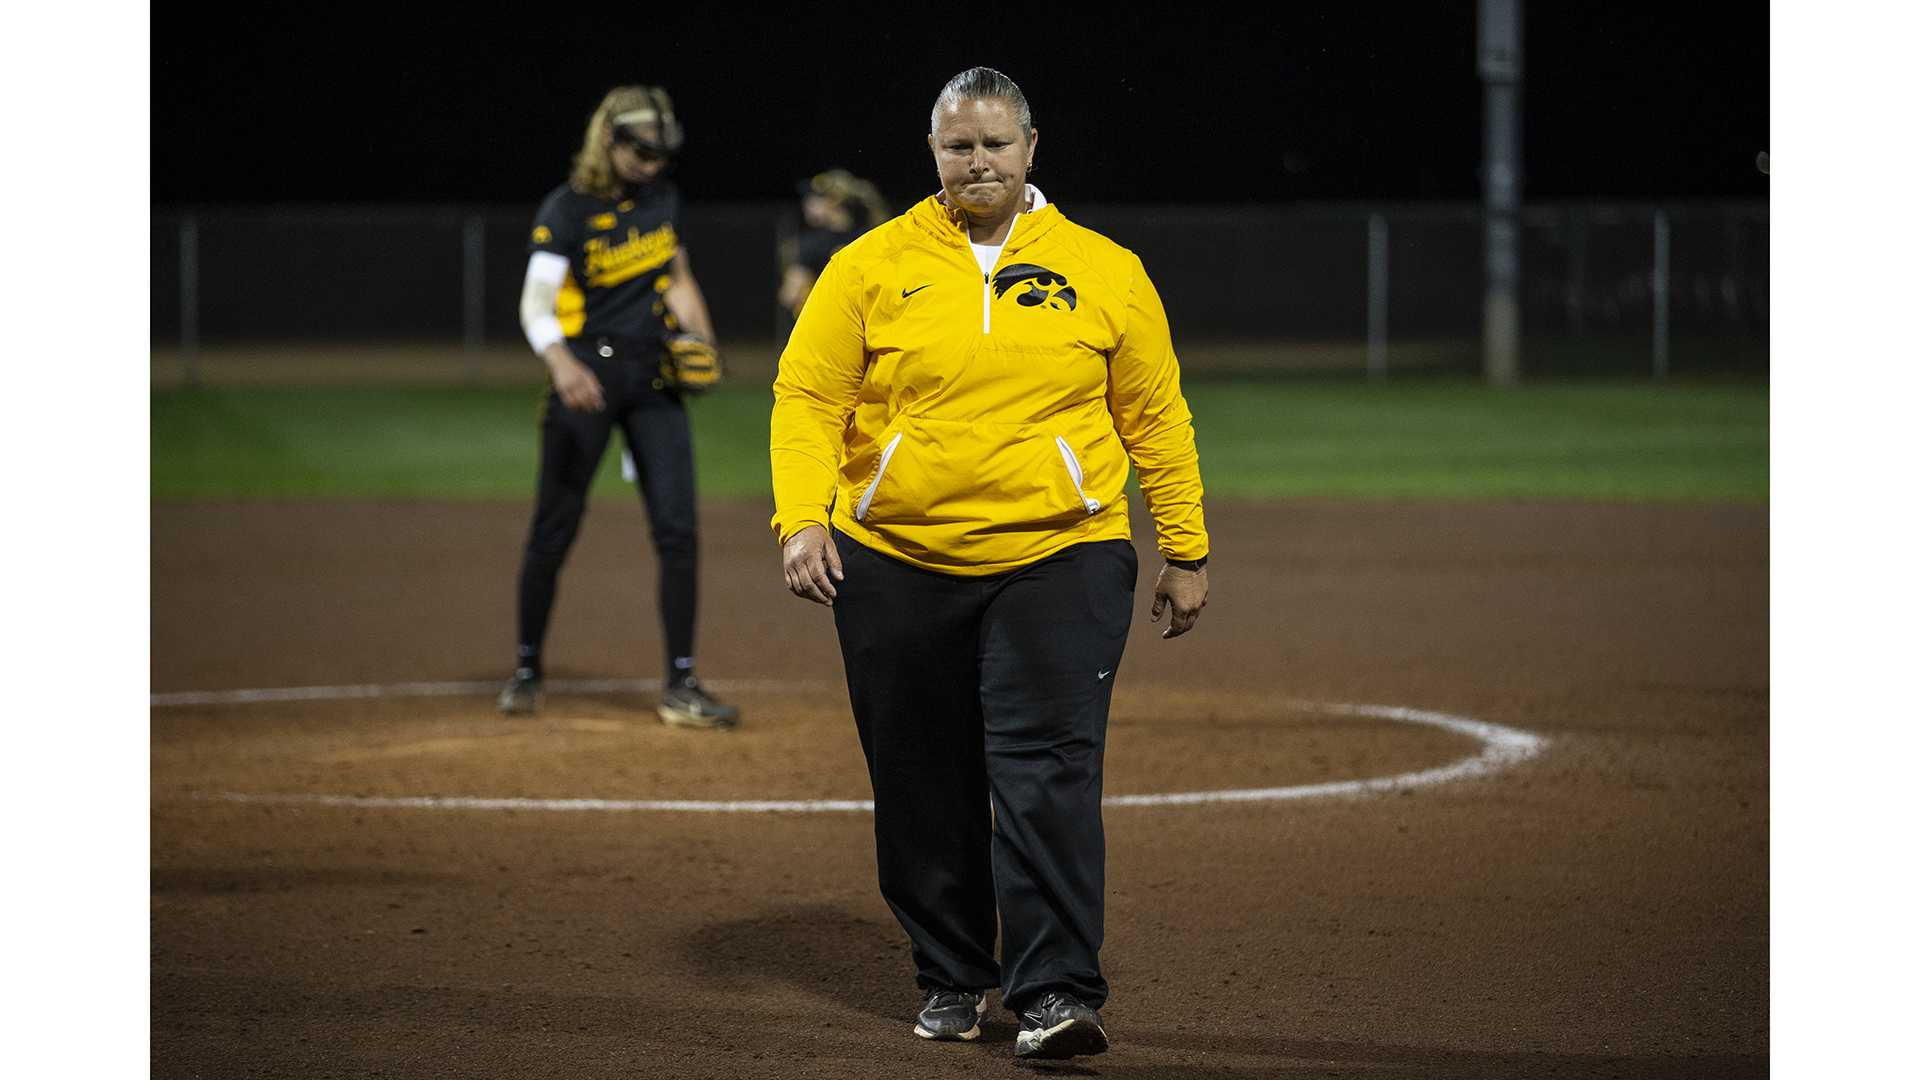 Iowa Head Coach Marla Looper walks off the field during Iowa's Big Ten tournament game against Ohio State at the Goodman Softball complex in Madison, WI. The Hawkeyes defeated the Buckeyes 5-1. (Nick Rohlman/The Daily Iowan)